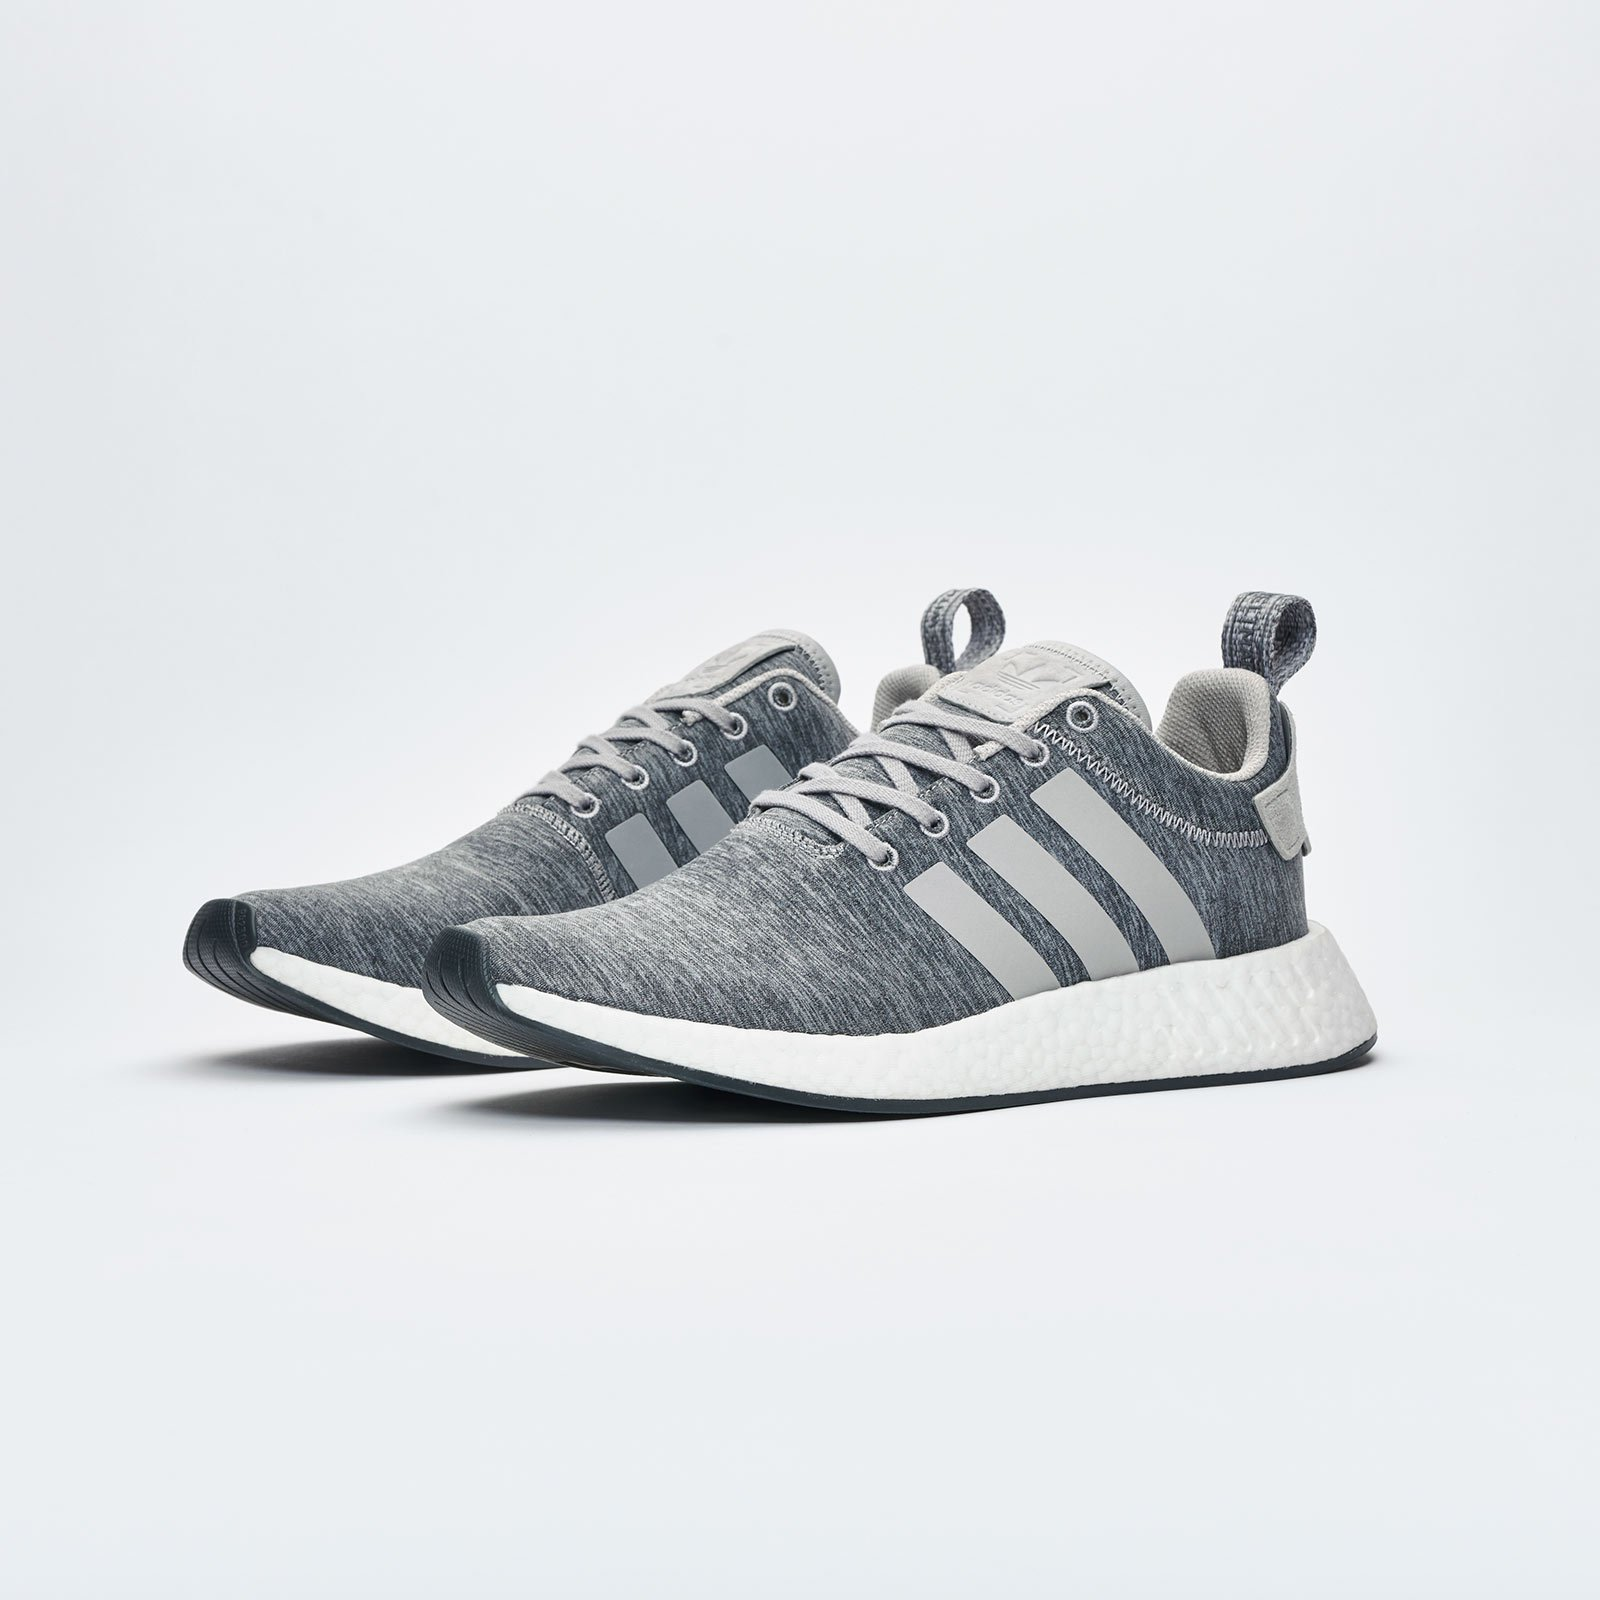 reputable site 3a4b5 7887e adidas NMD R2 - By2790 - Sneakersnstuff | sneakers ...